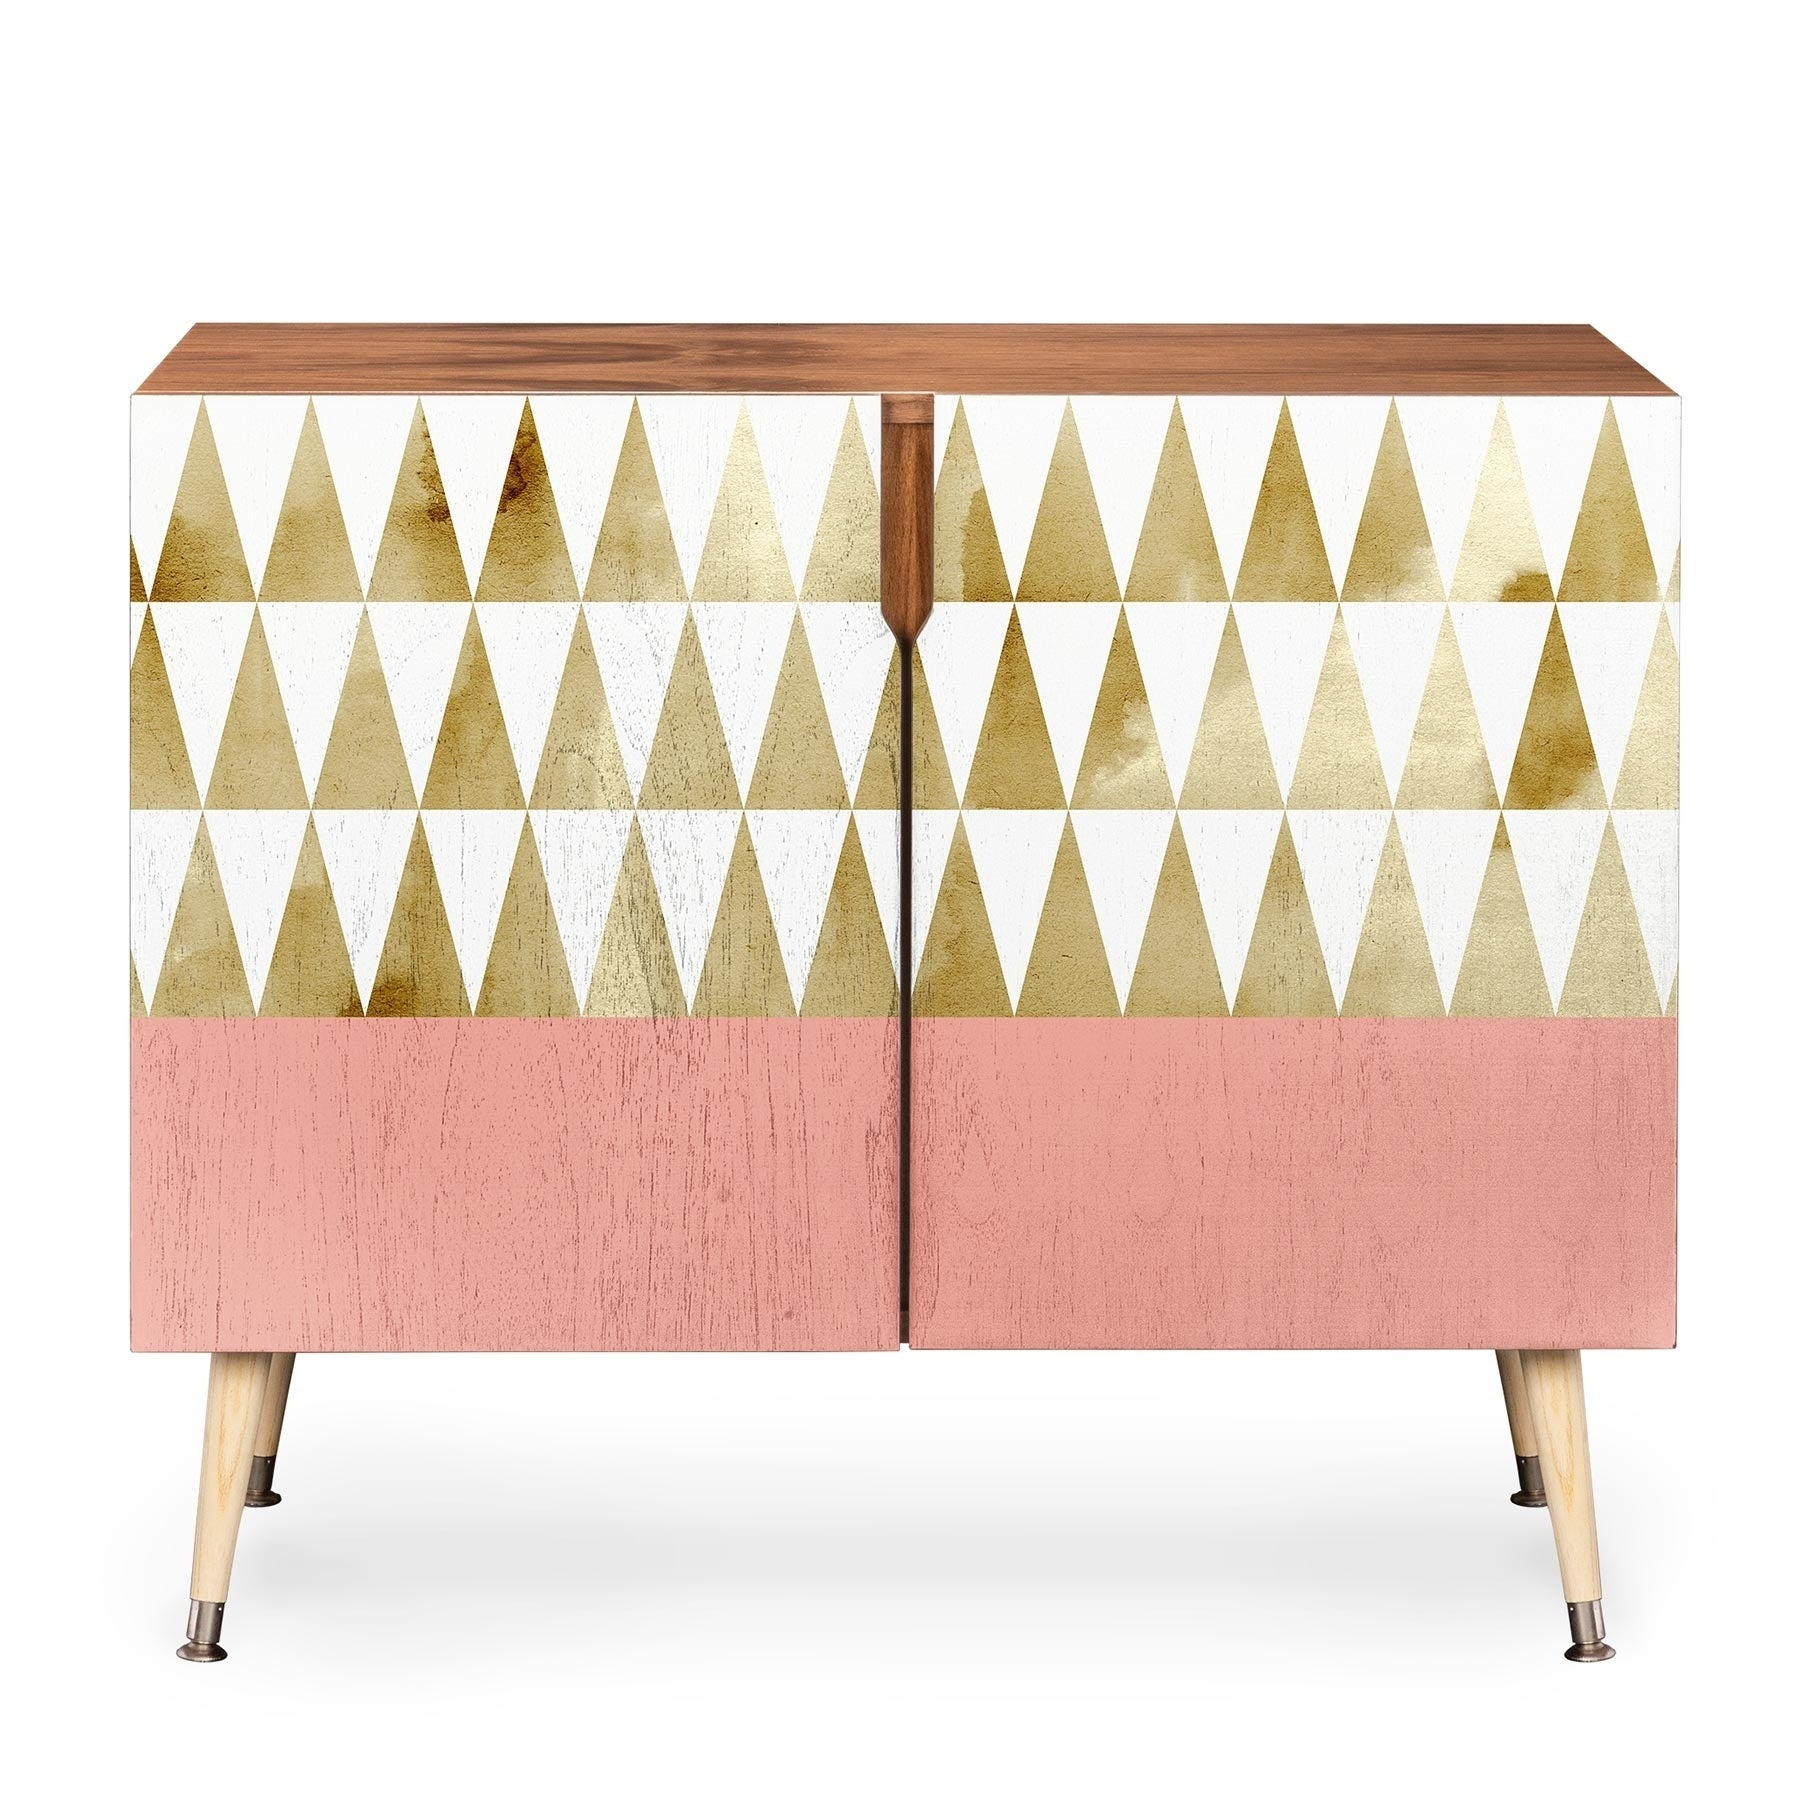 Deny Designs Georgiana Paraschiv 'gold Triangles' Credenza Pertaining To Bluetrellis Credenzas (Gallery 12 of 30)